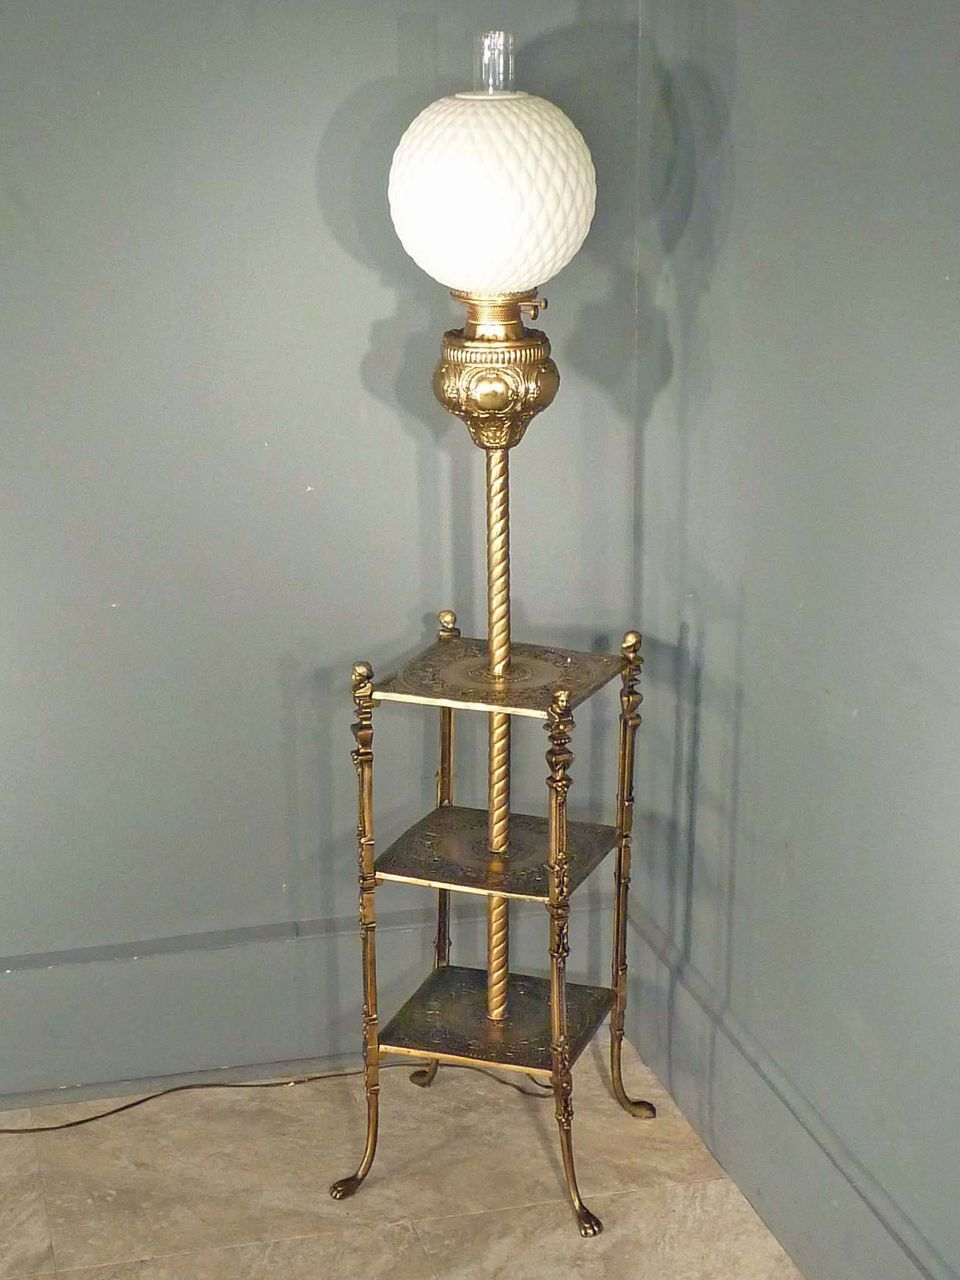 Victorian Piano, Floor Lamp with Shelves from antiquesonhanover on